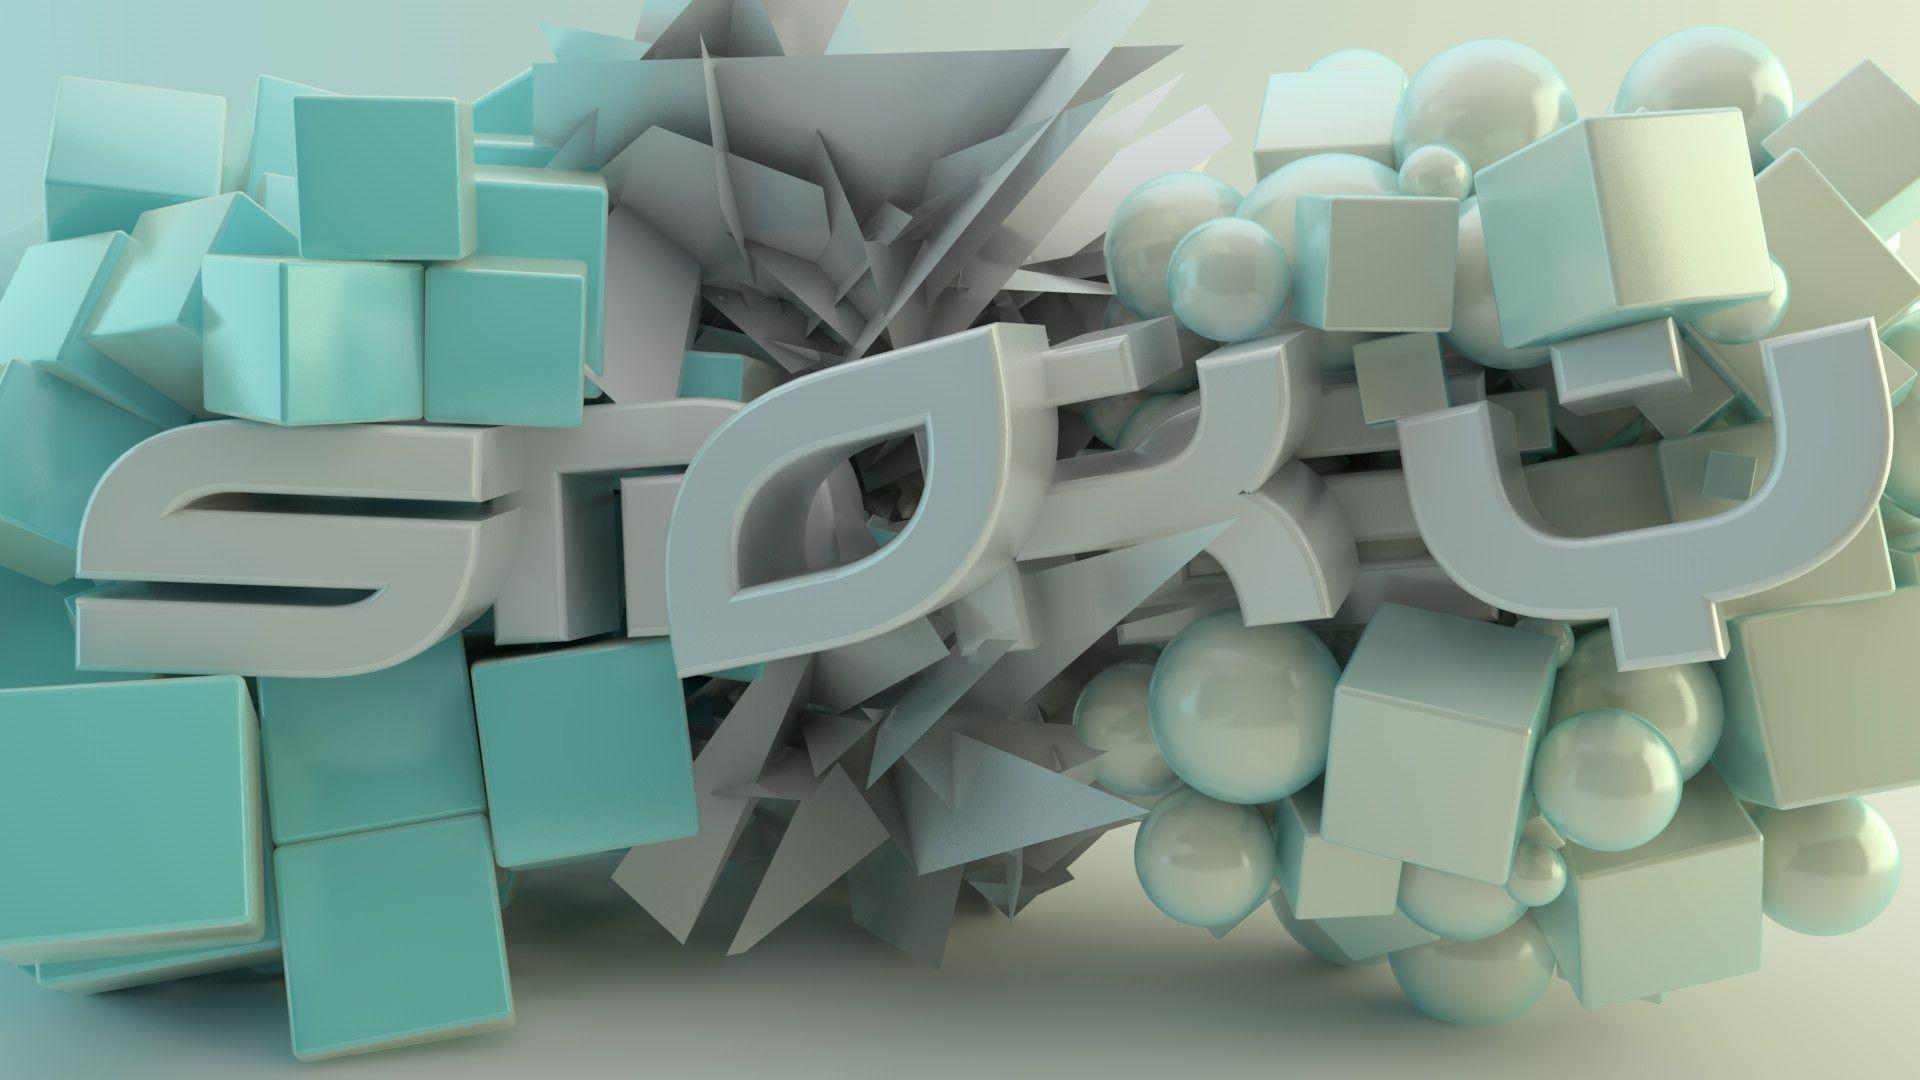 cinema 4d wallpapers 1366x768 - photo #41